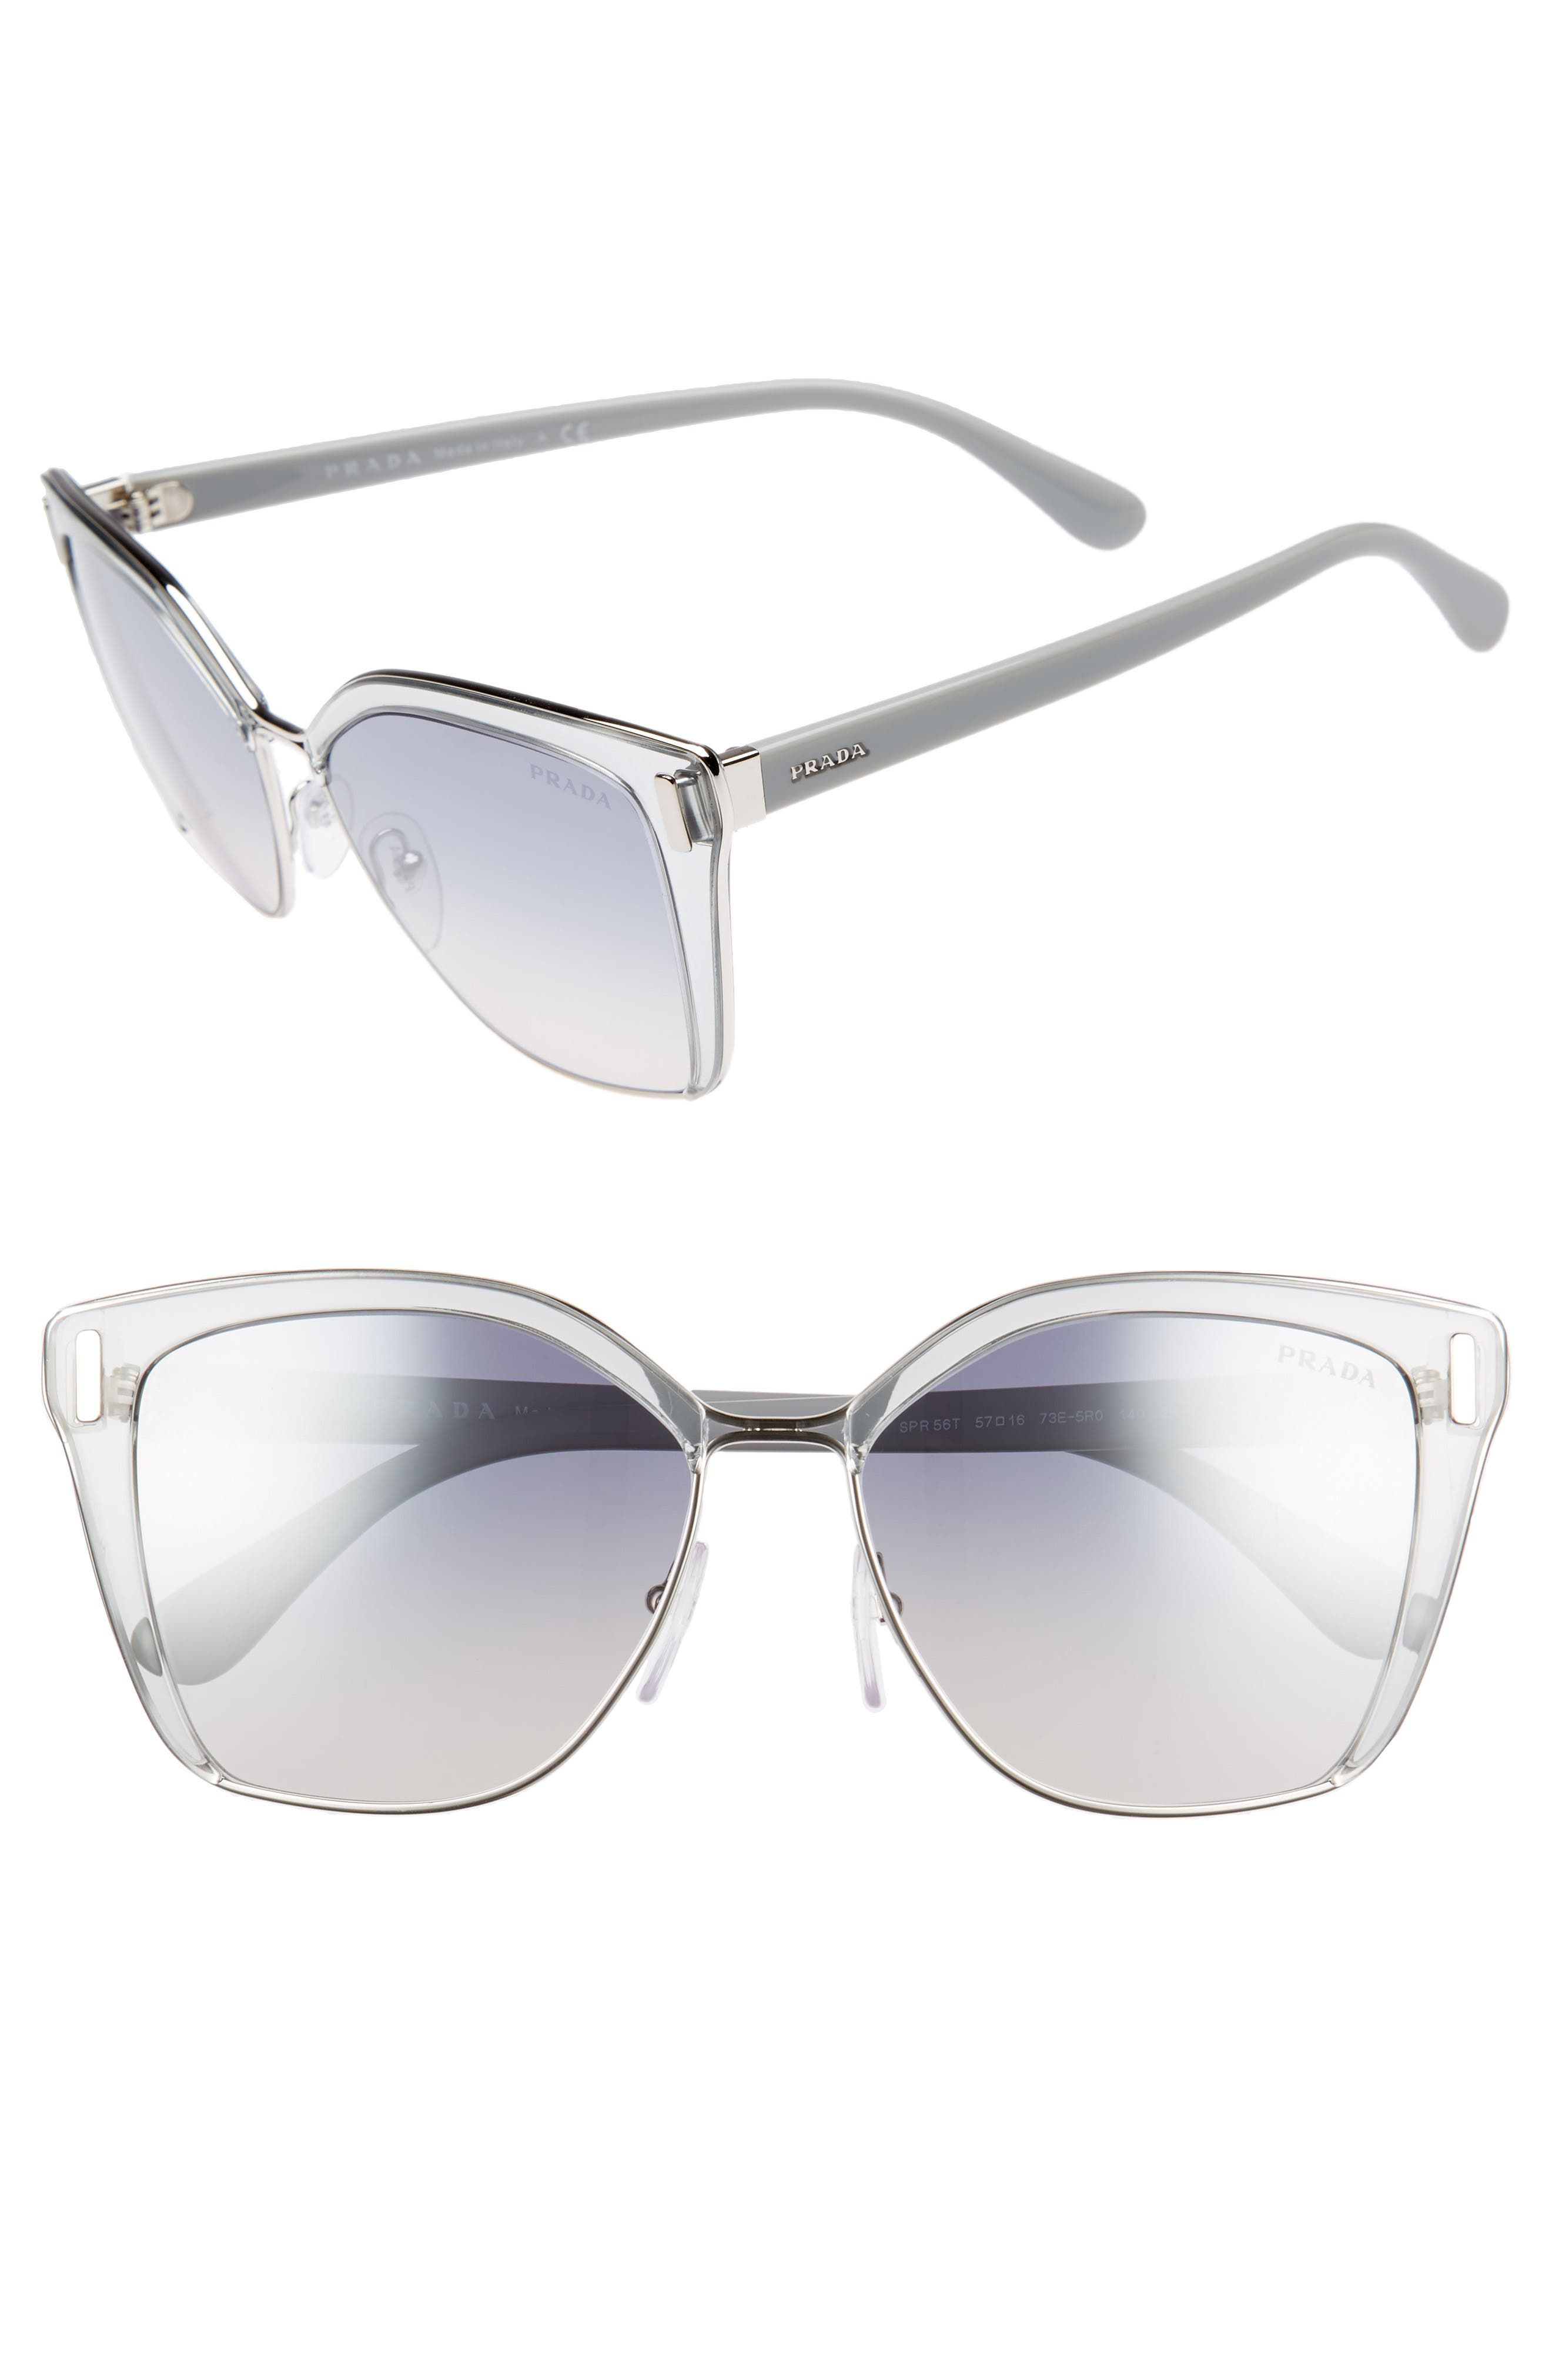 Prada 54mm Gradient Geometric Sunglasses